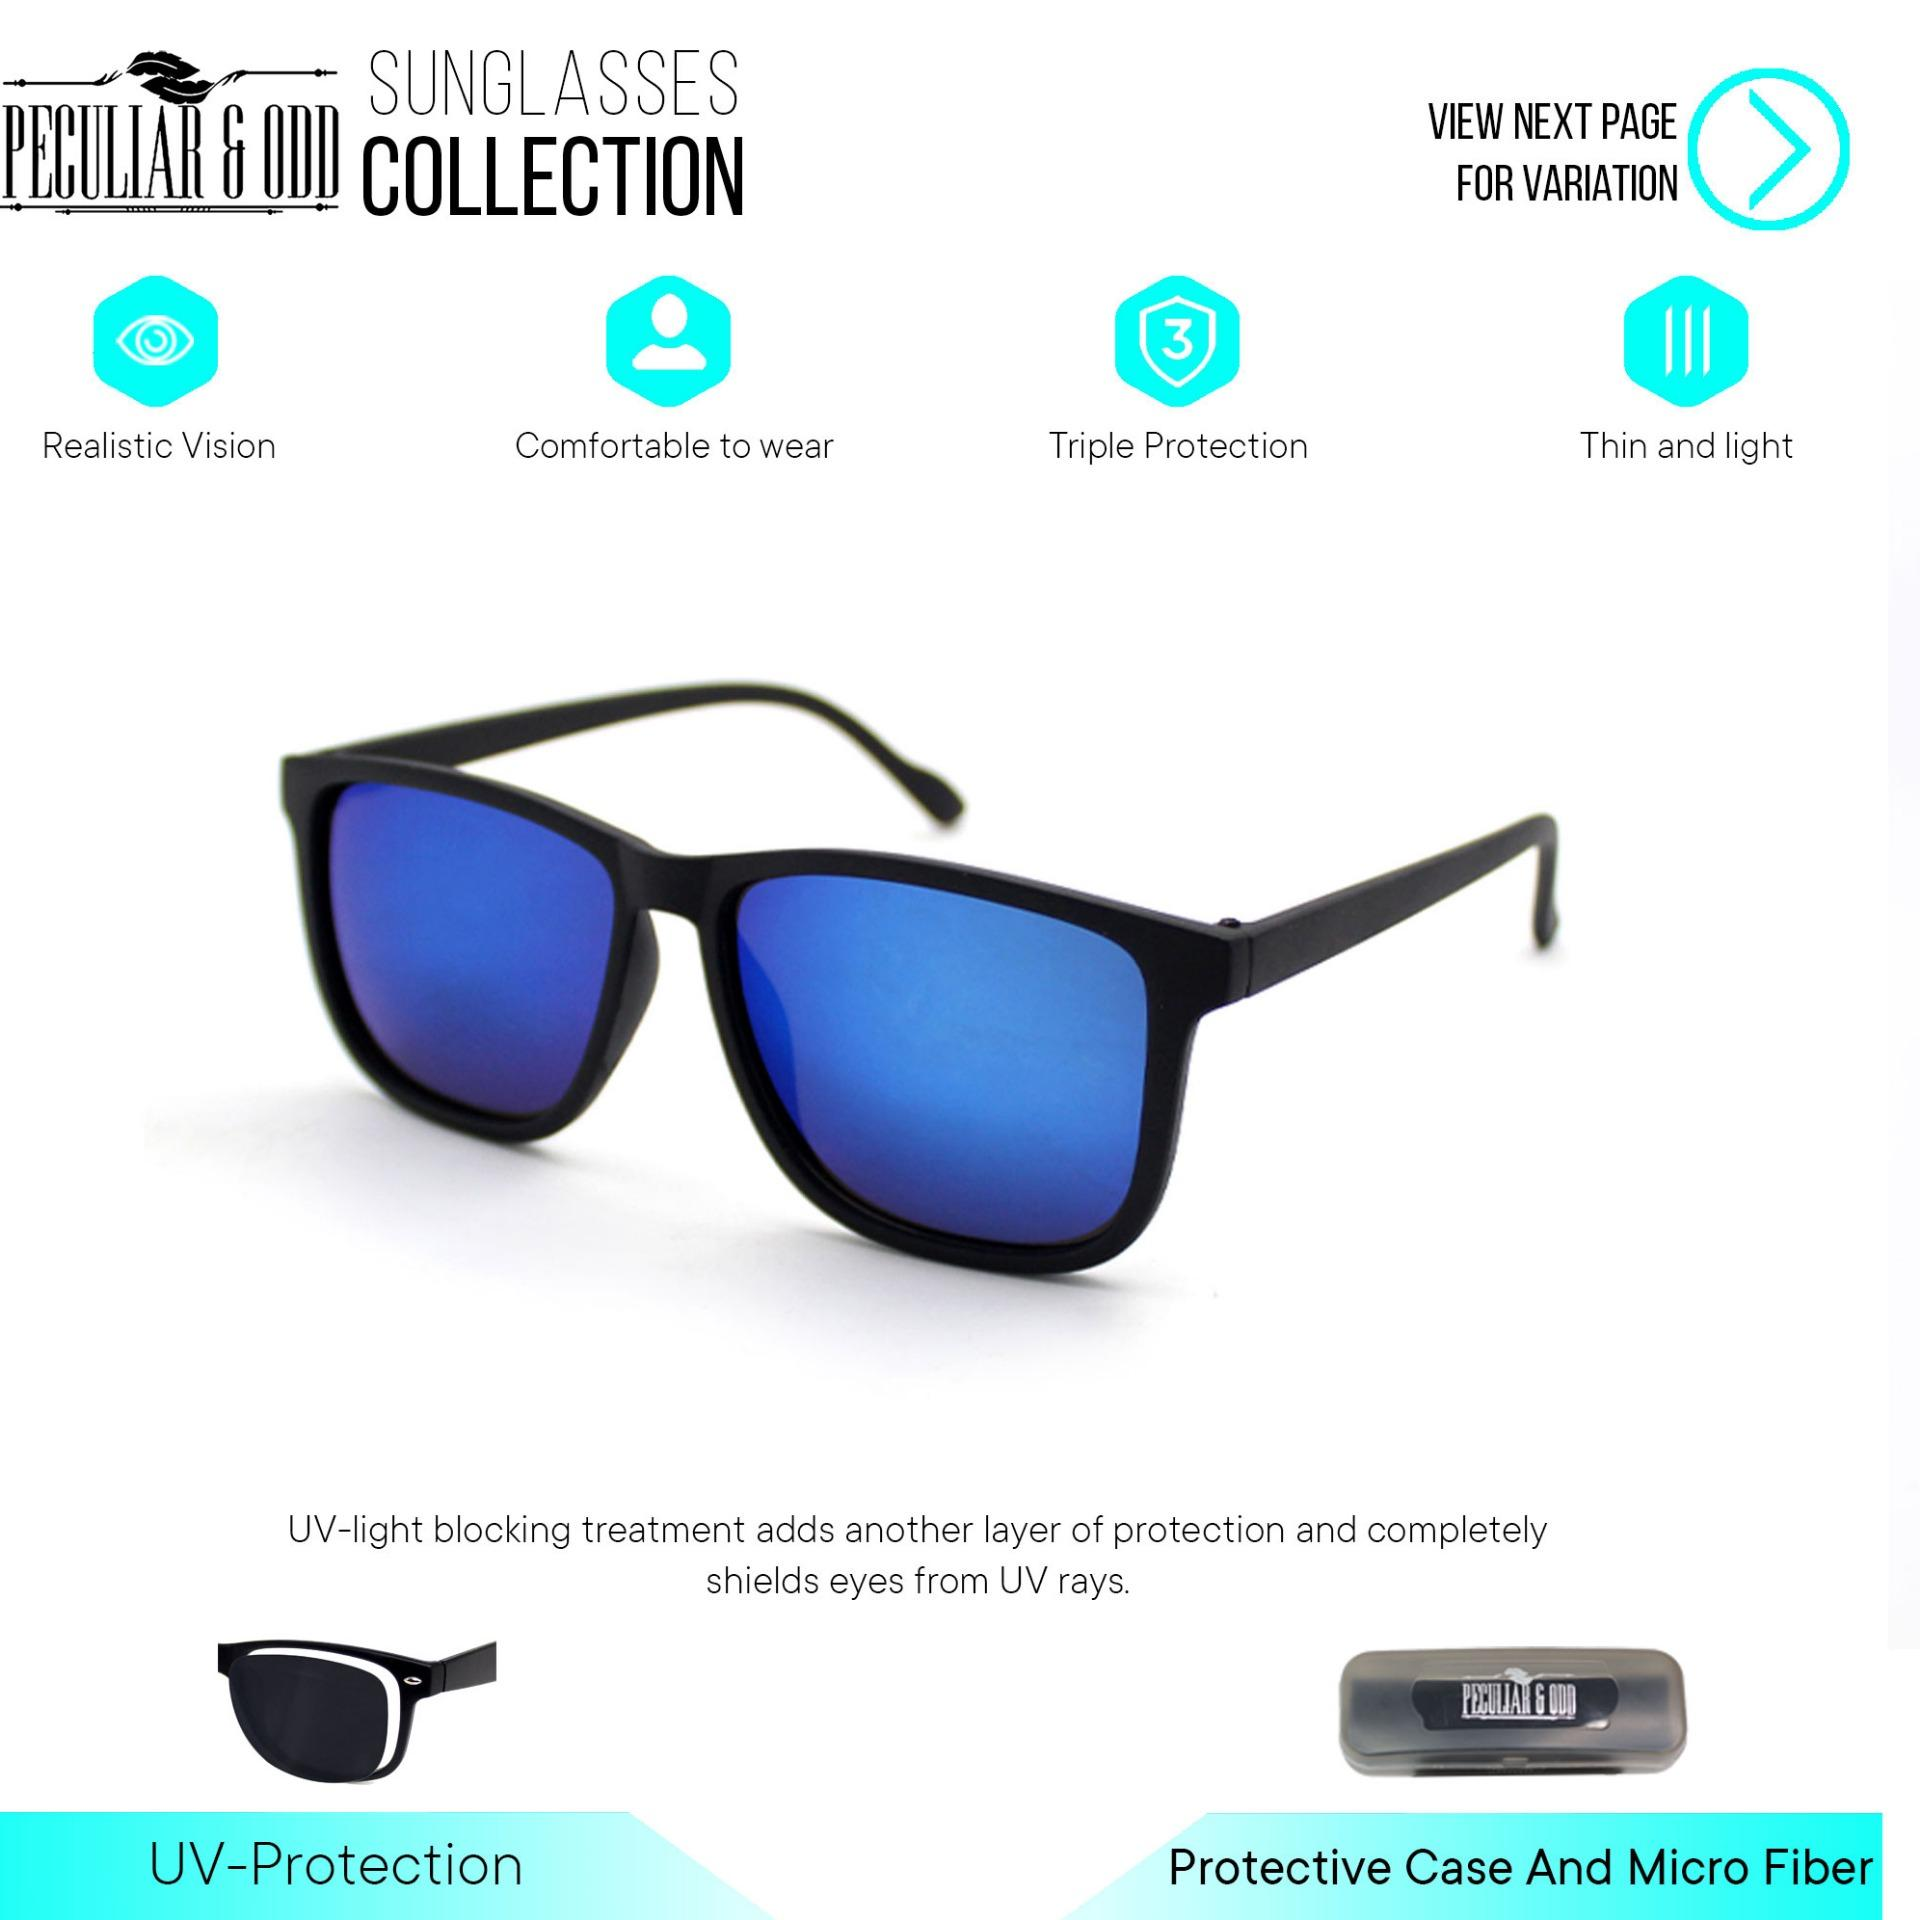 d907aa783 Sunglasses For Men for sale - Mens Sunglasses Online Deals & Prices in  Philippines | Lazada.com.ph